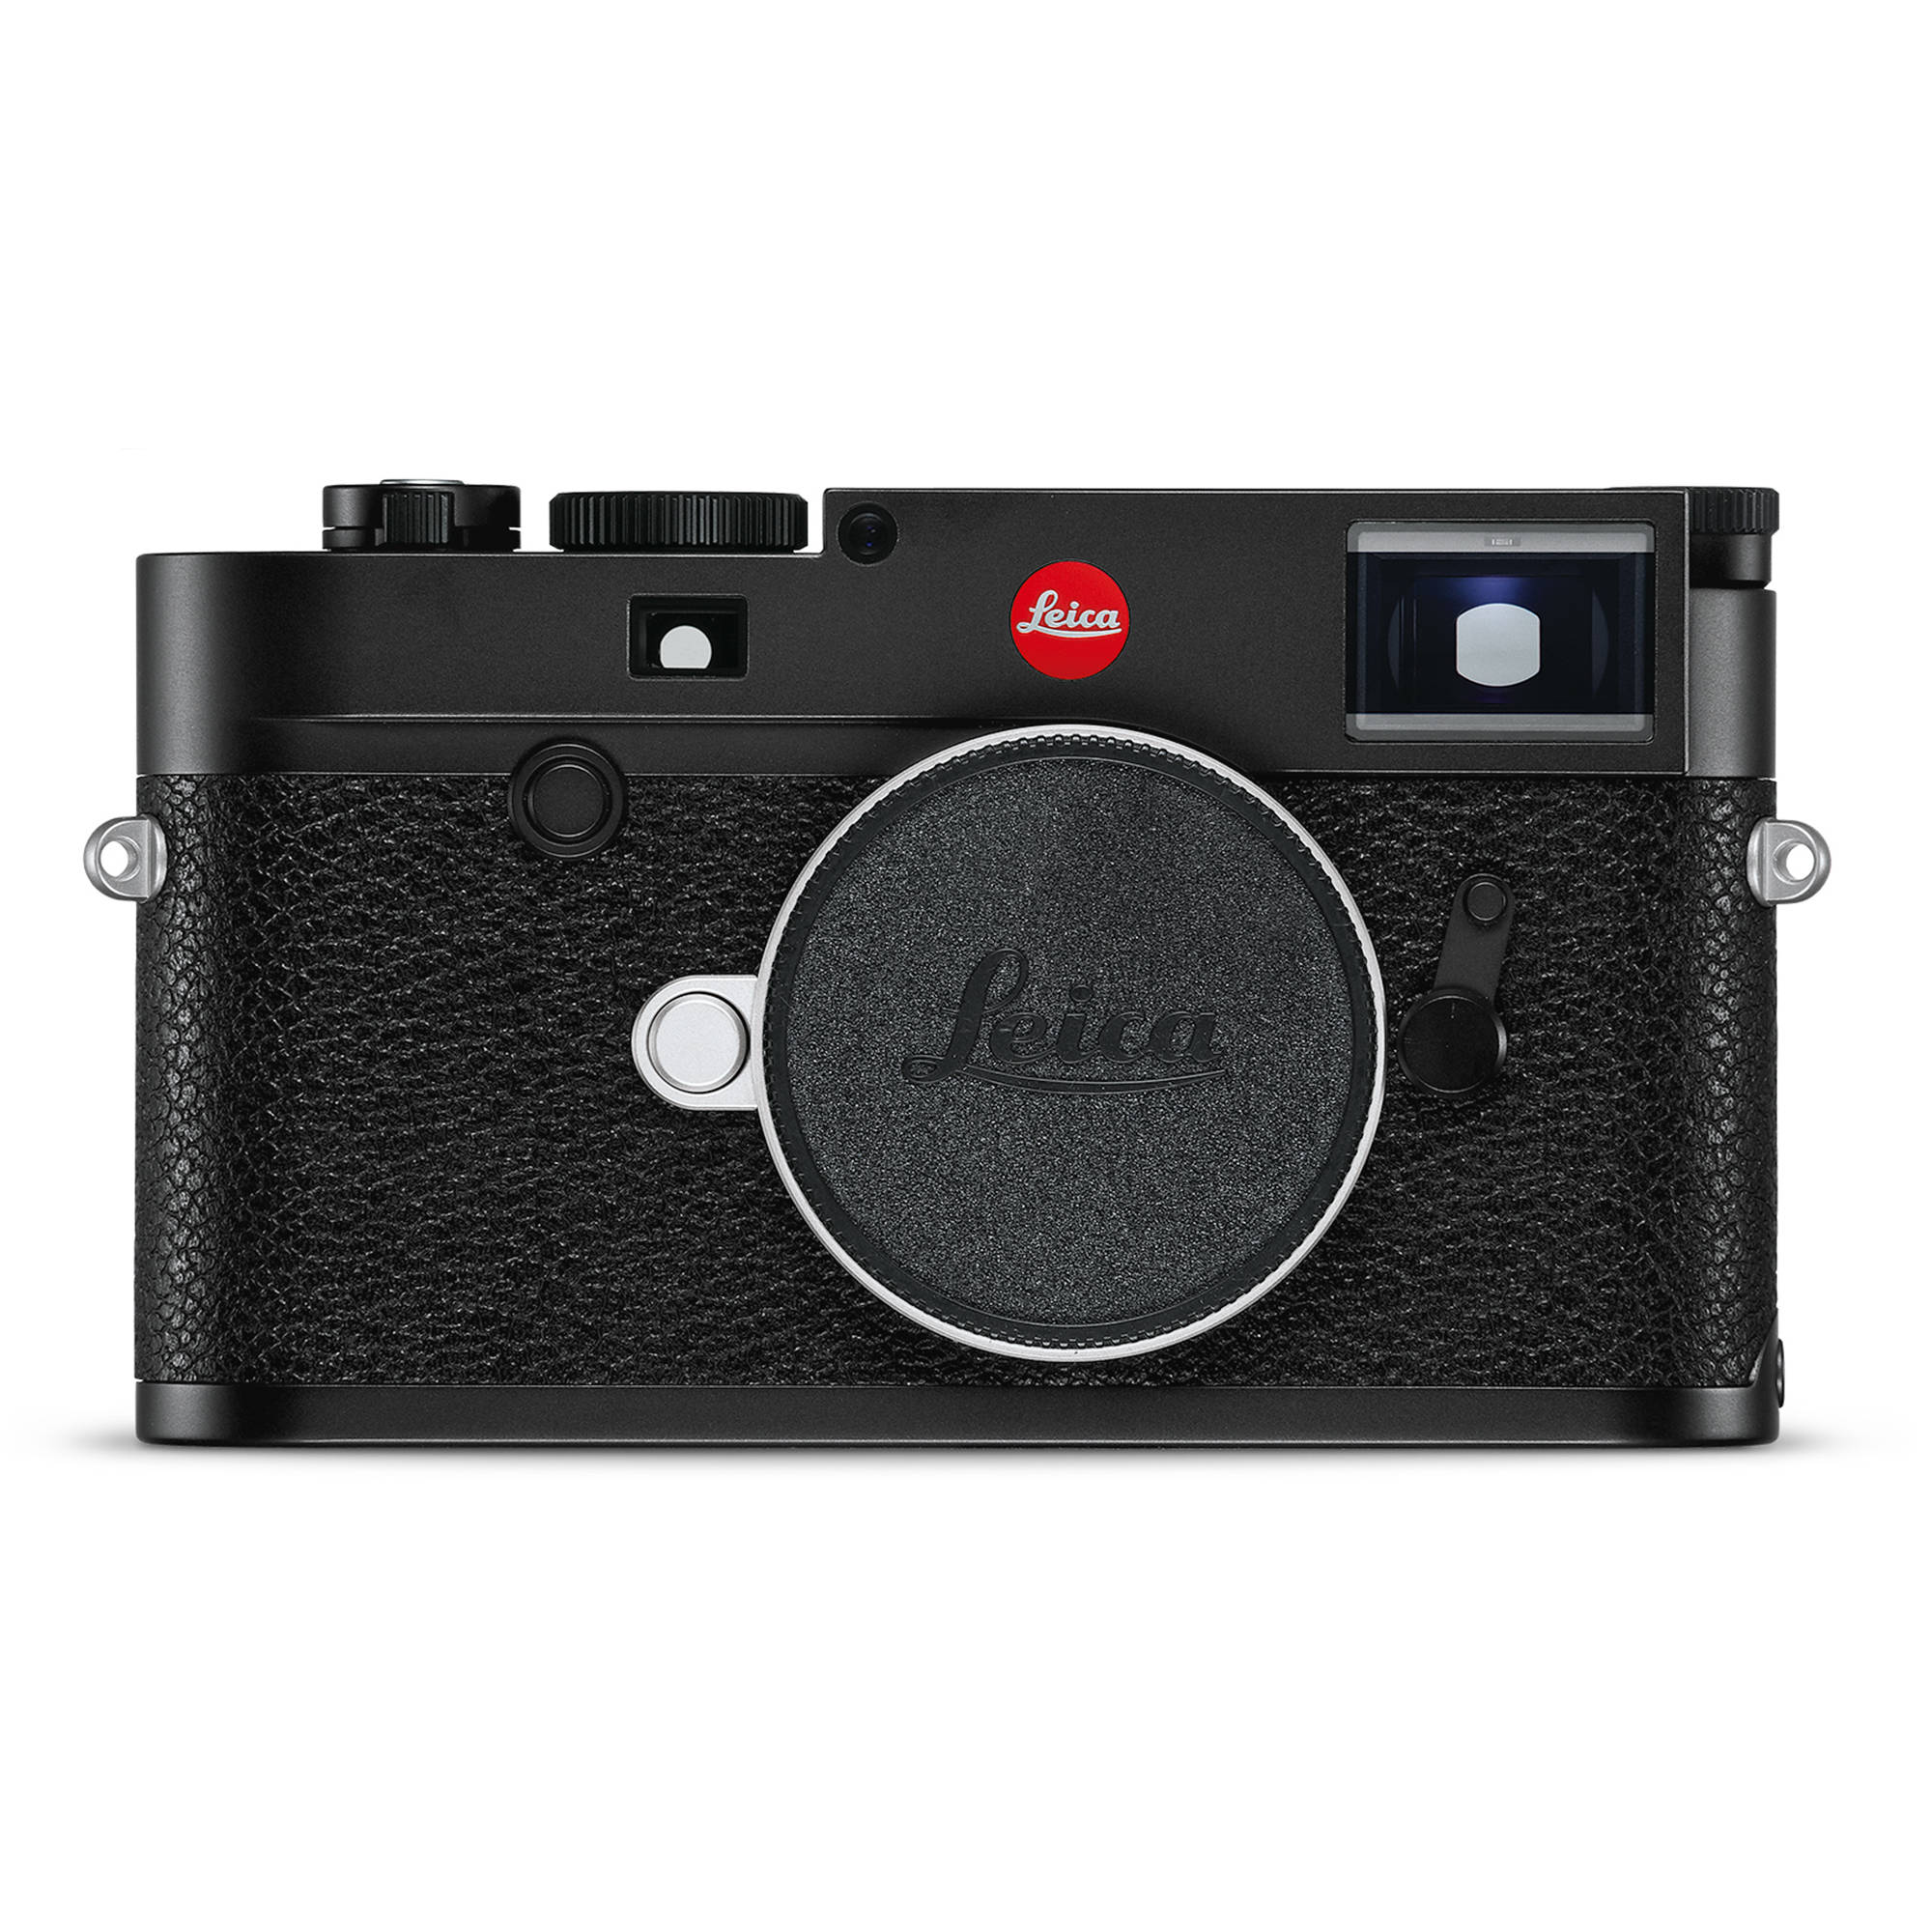 Leica M10 Digital Rangefinder Camera Black 20000 Bh Photo Cash Pb